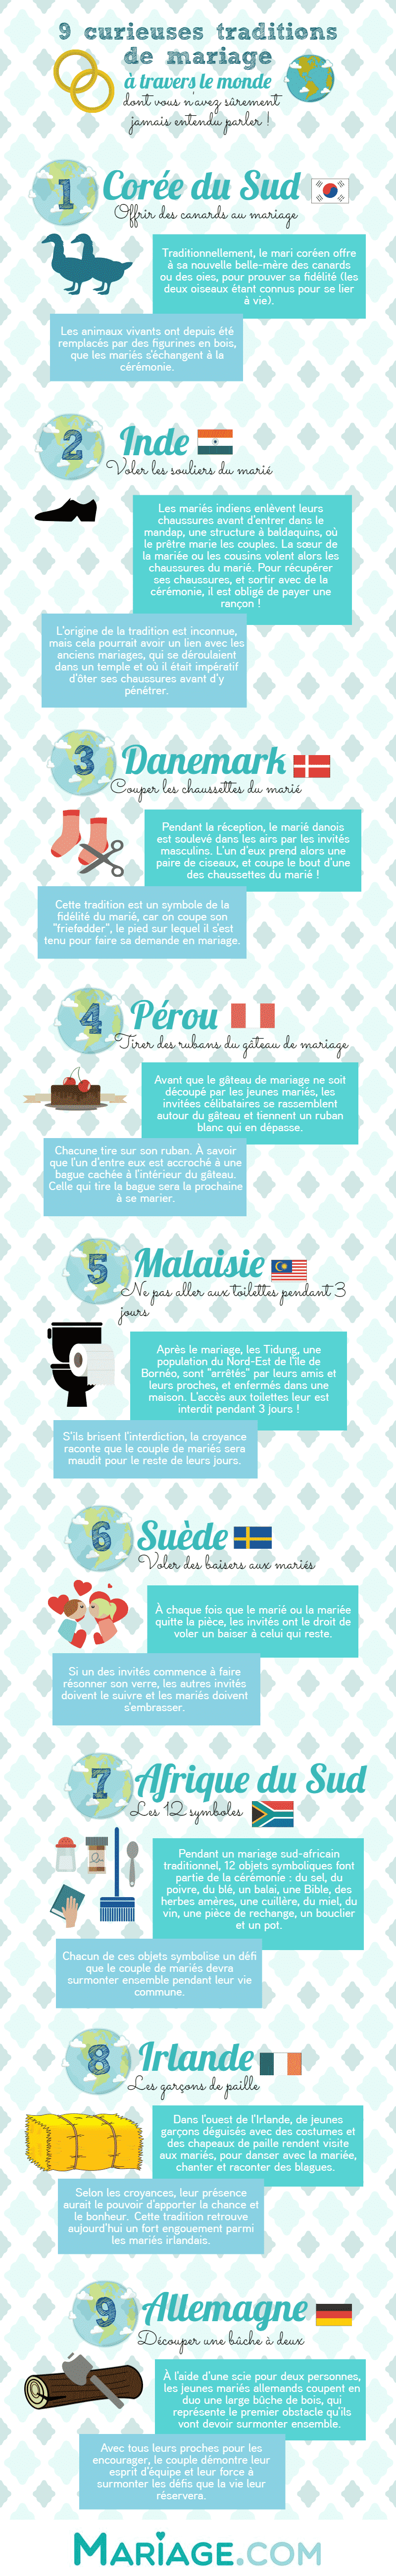 9-curieuses-traditions-de-mariage